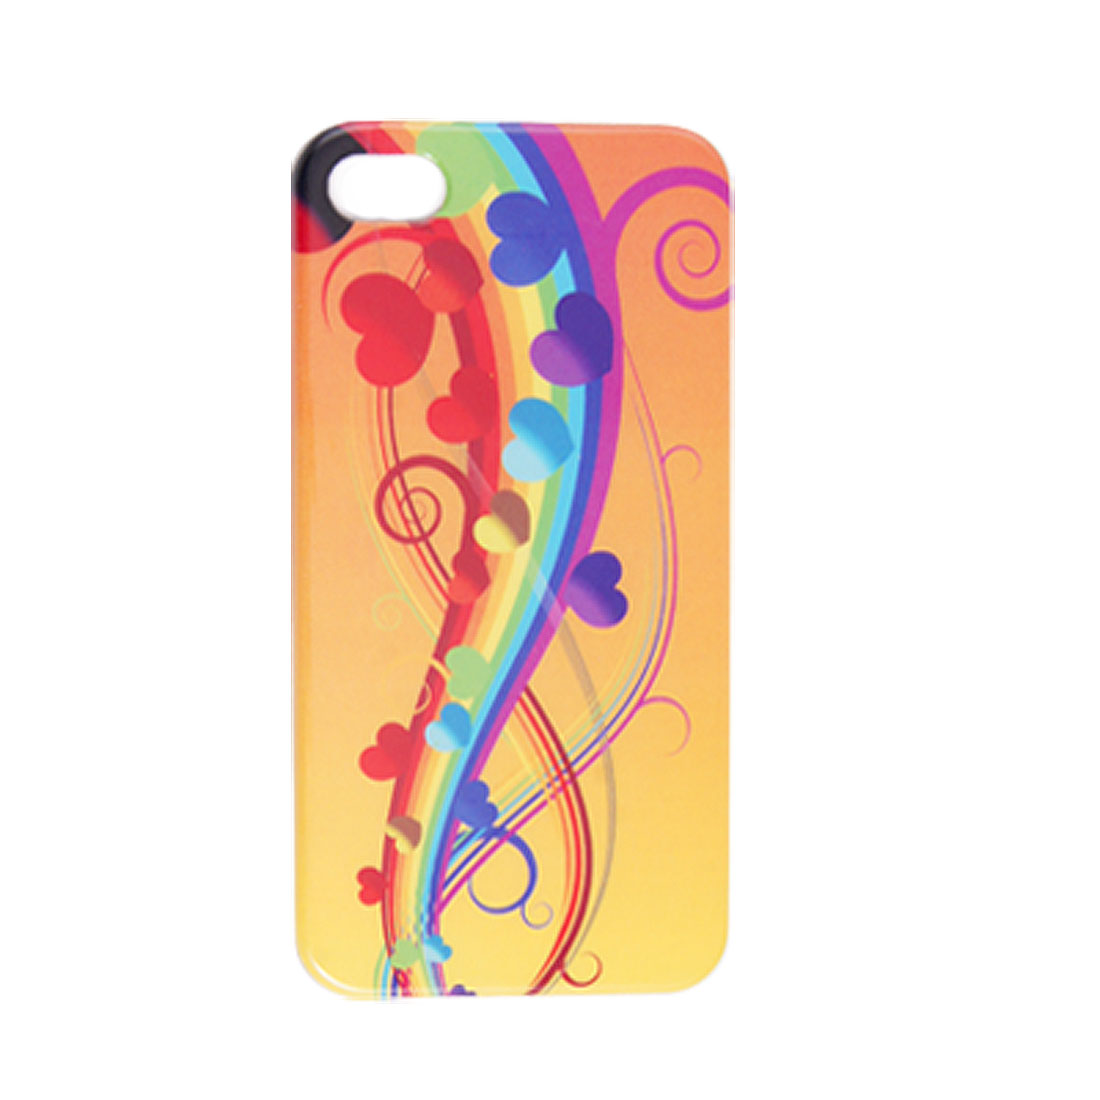 Colorful Rainbow Heart Pattern IMD Hard Plastic Cover for iPhone 4 4G 4S